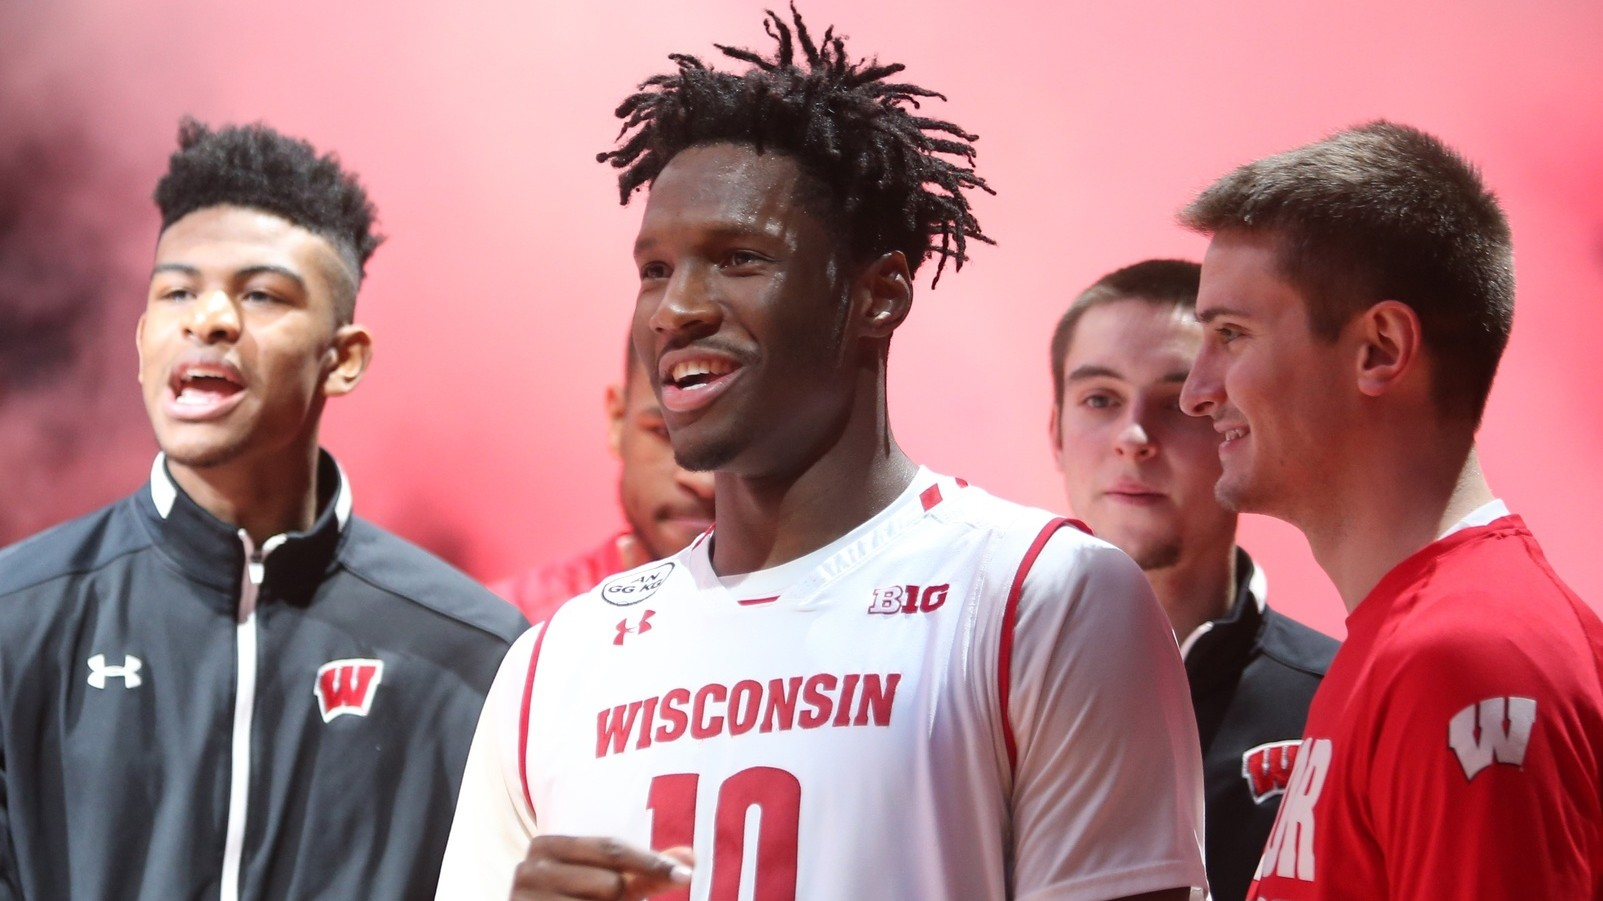 Nigel Hayes Is Playing In March Madness, And Taking On NCAA Amateurism In Federal Court